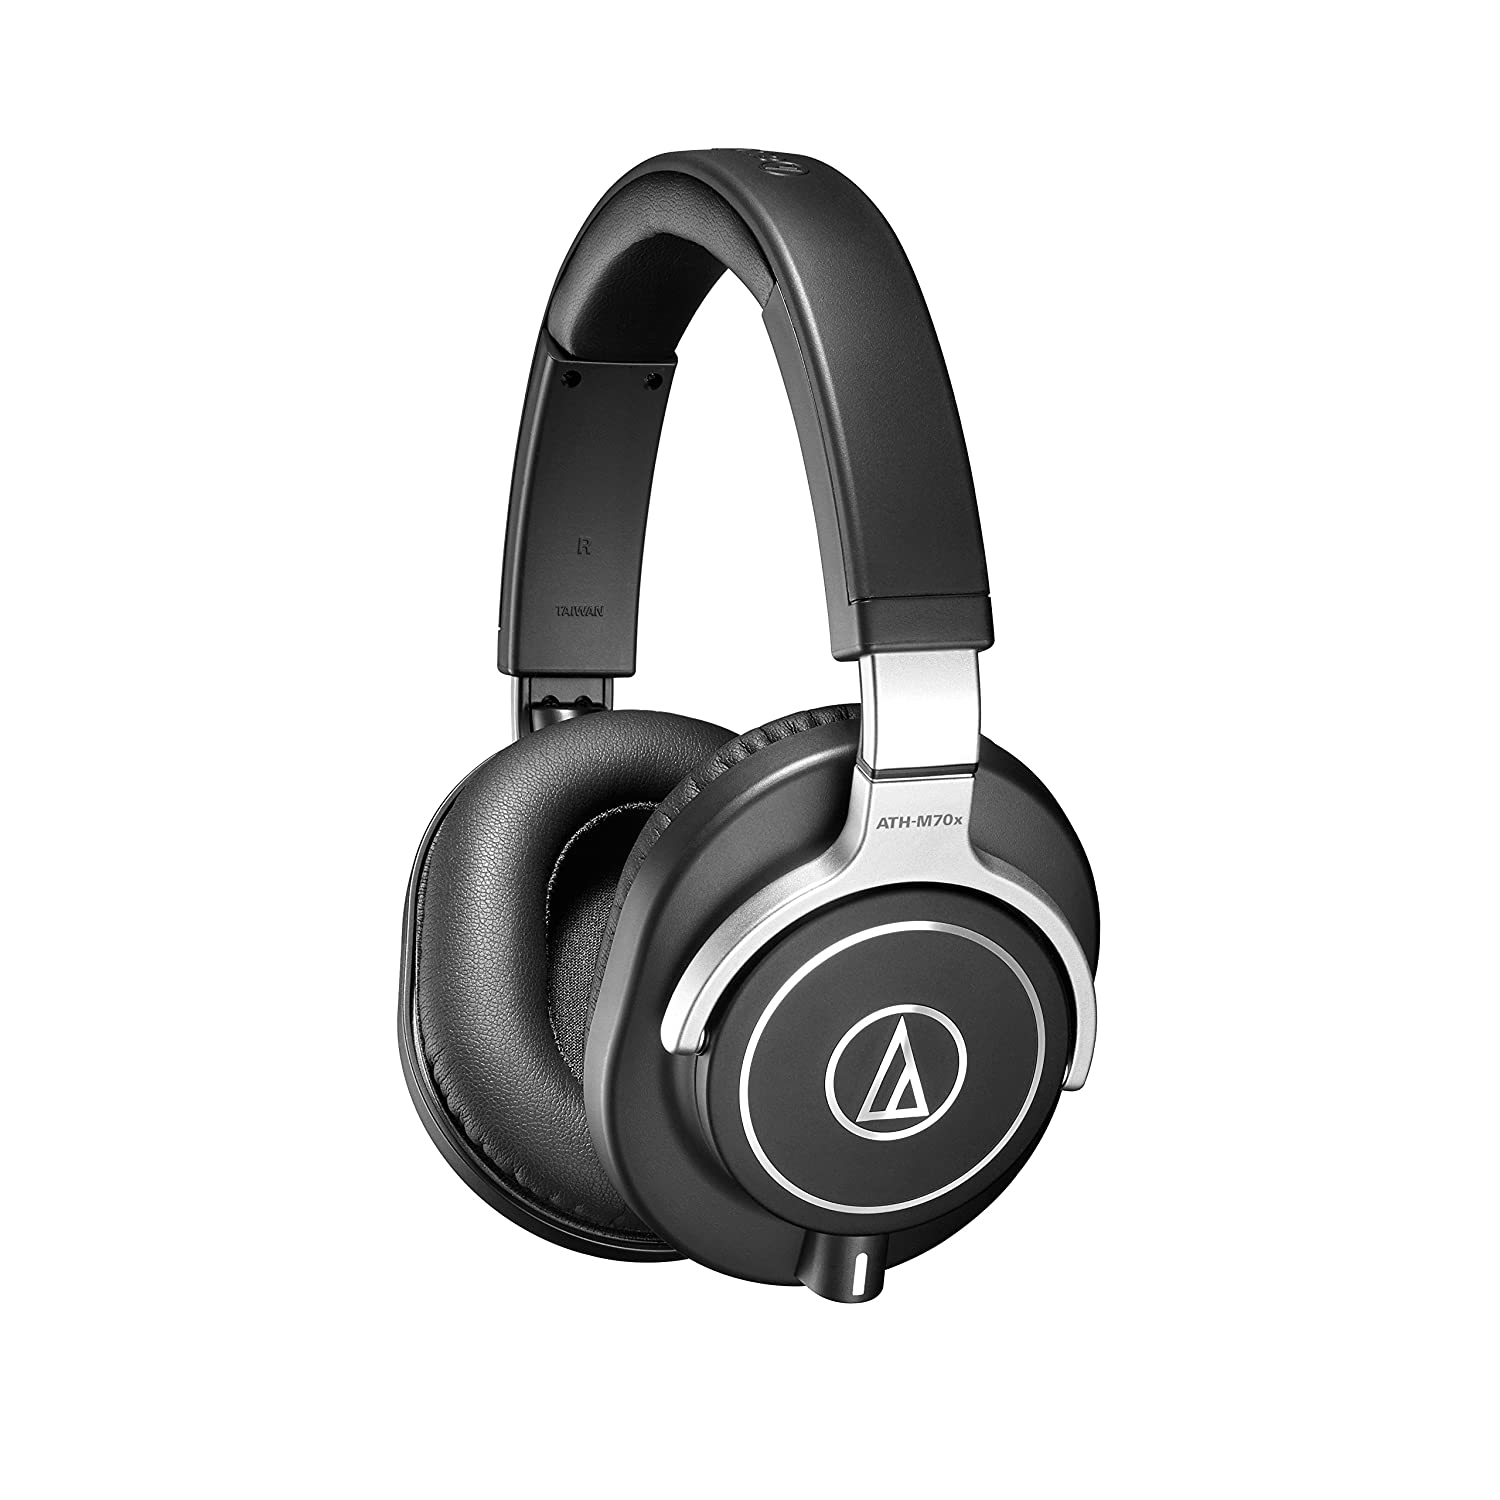 Audio-Technica ATH-M70x headphones Black Friday deal 2020